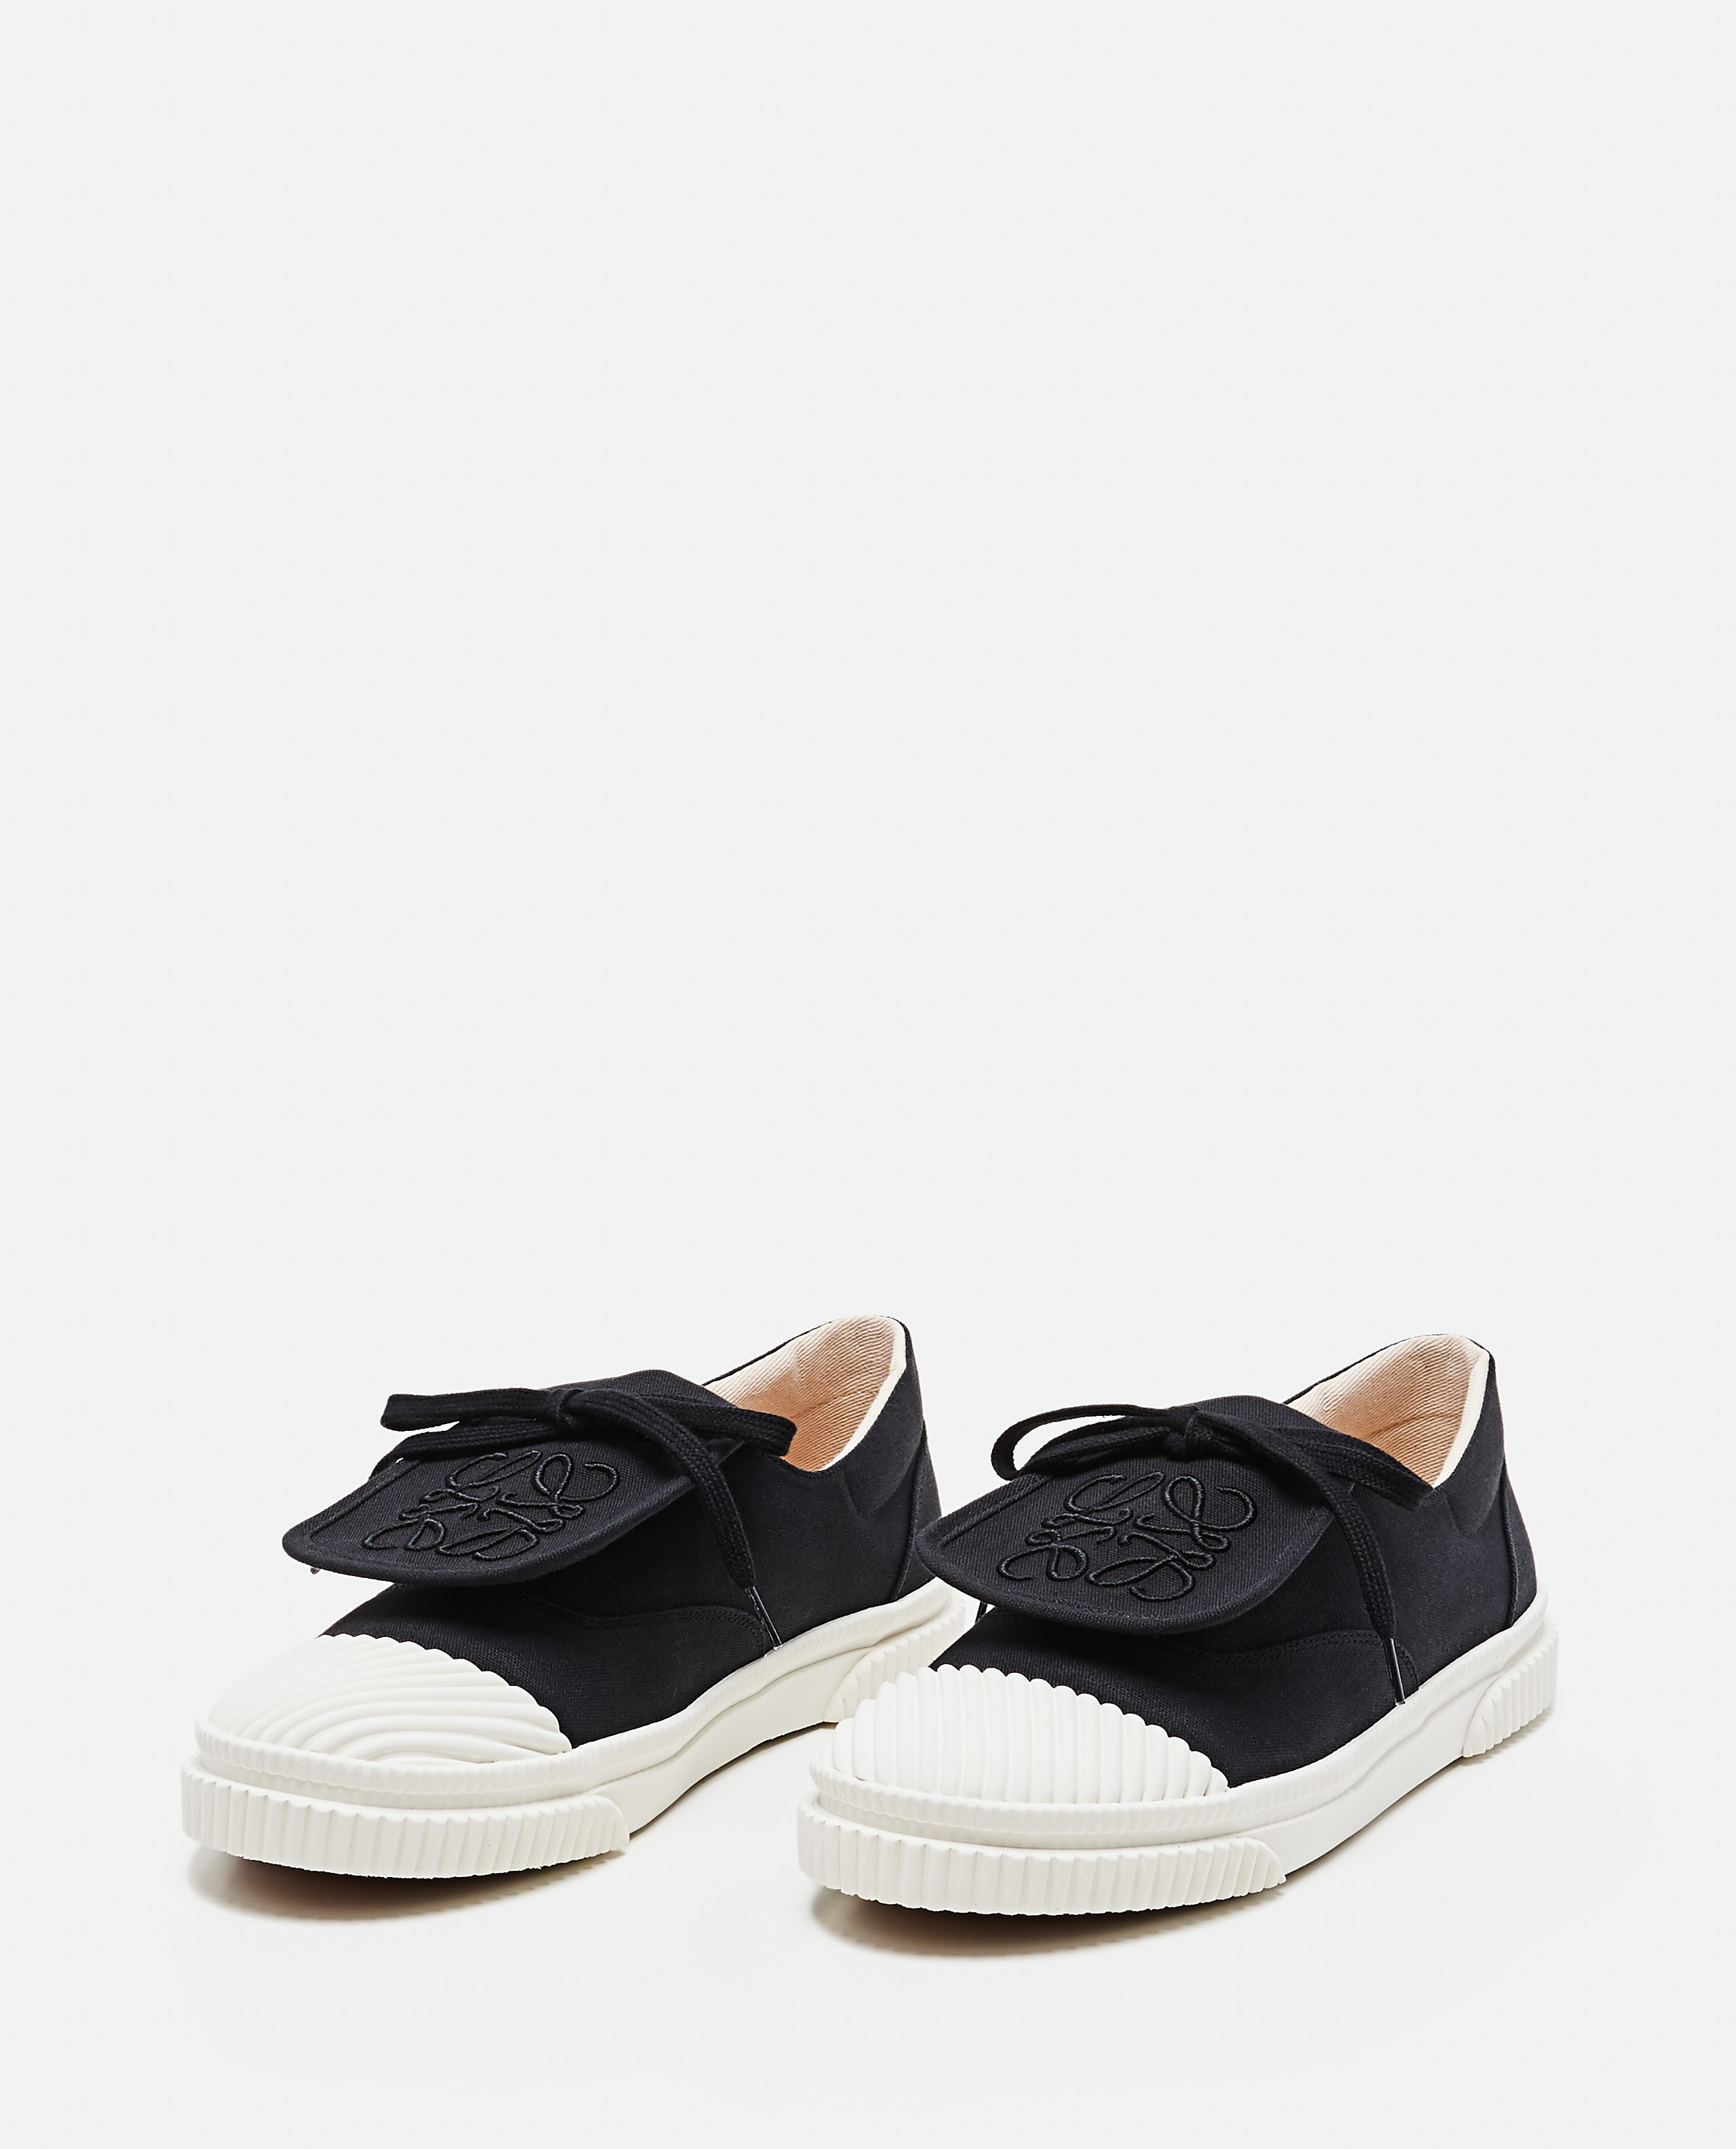 Sneaker con patta Anagram in tela Donna Loewe 000289270042586 2